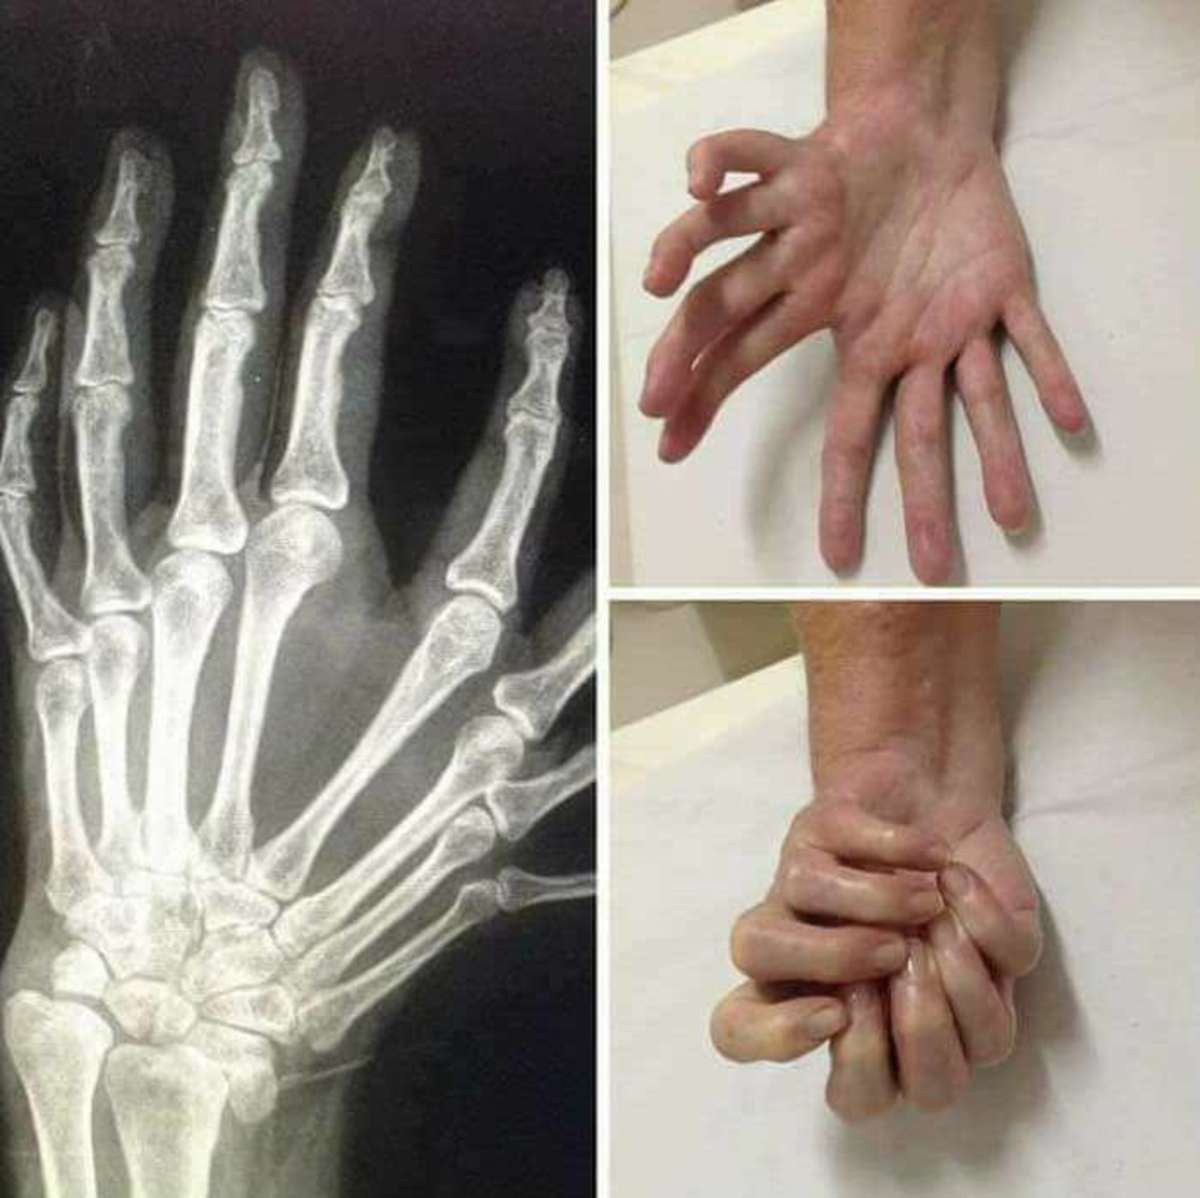 An unusual hand. .